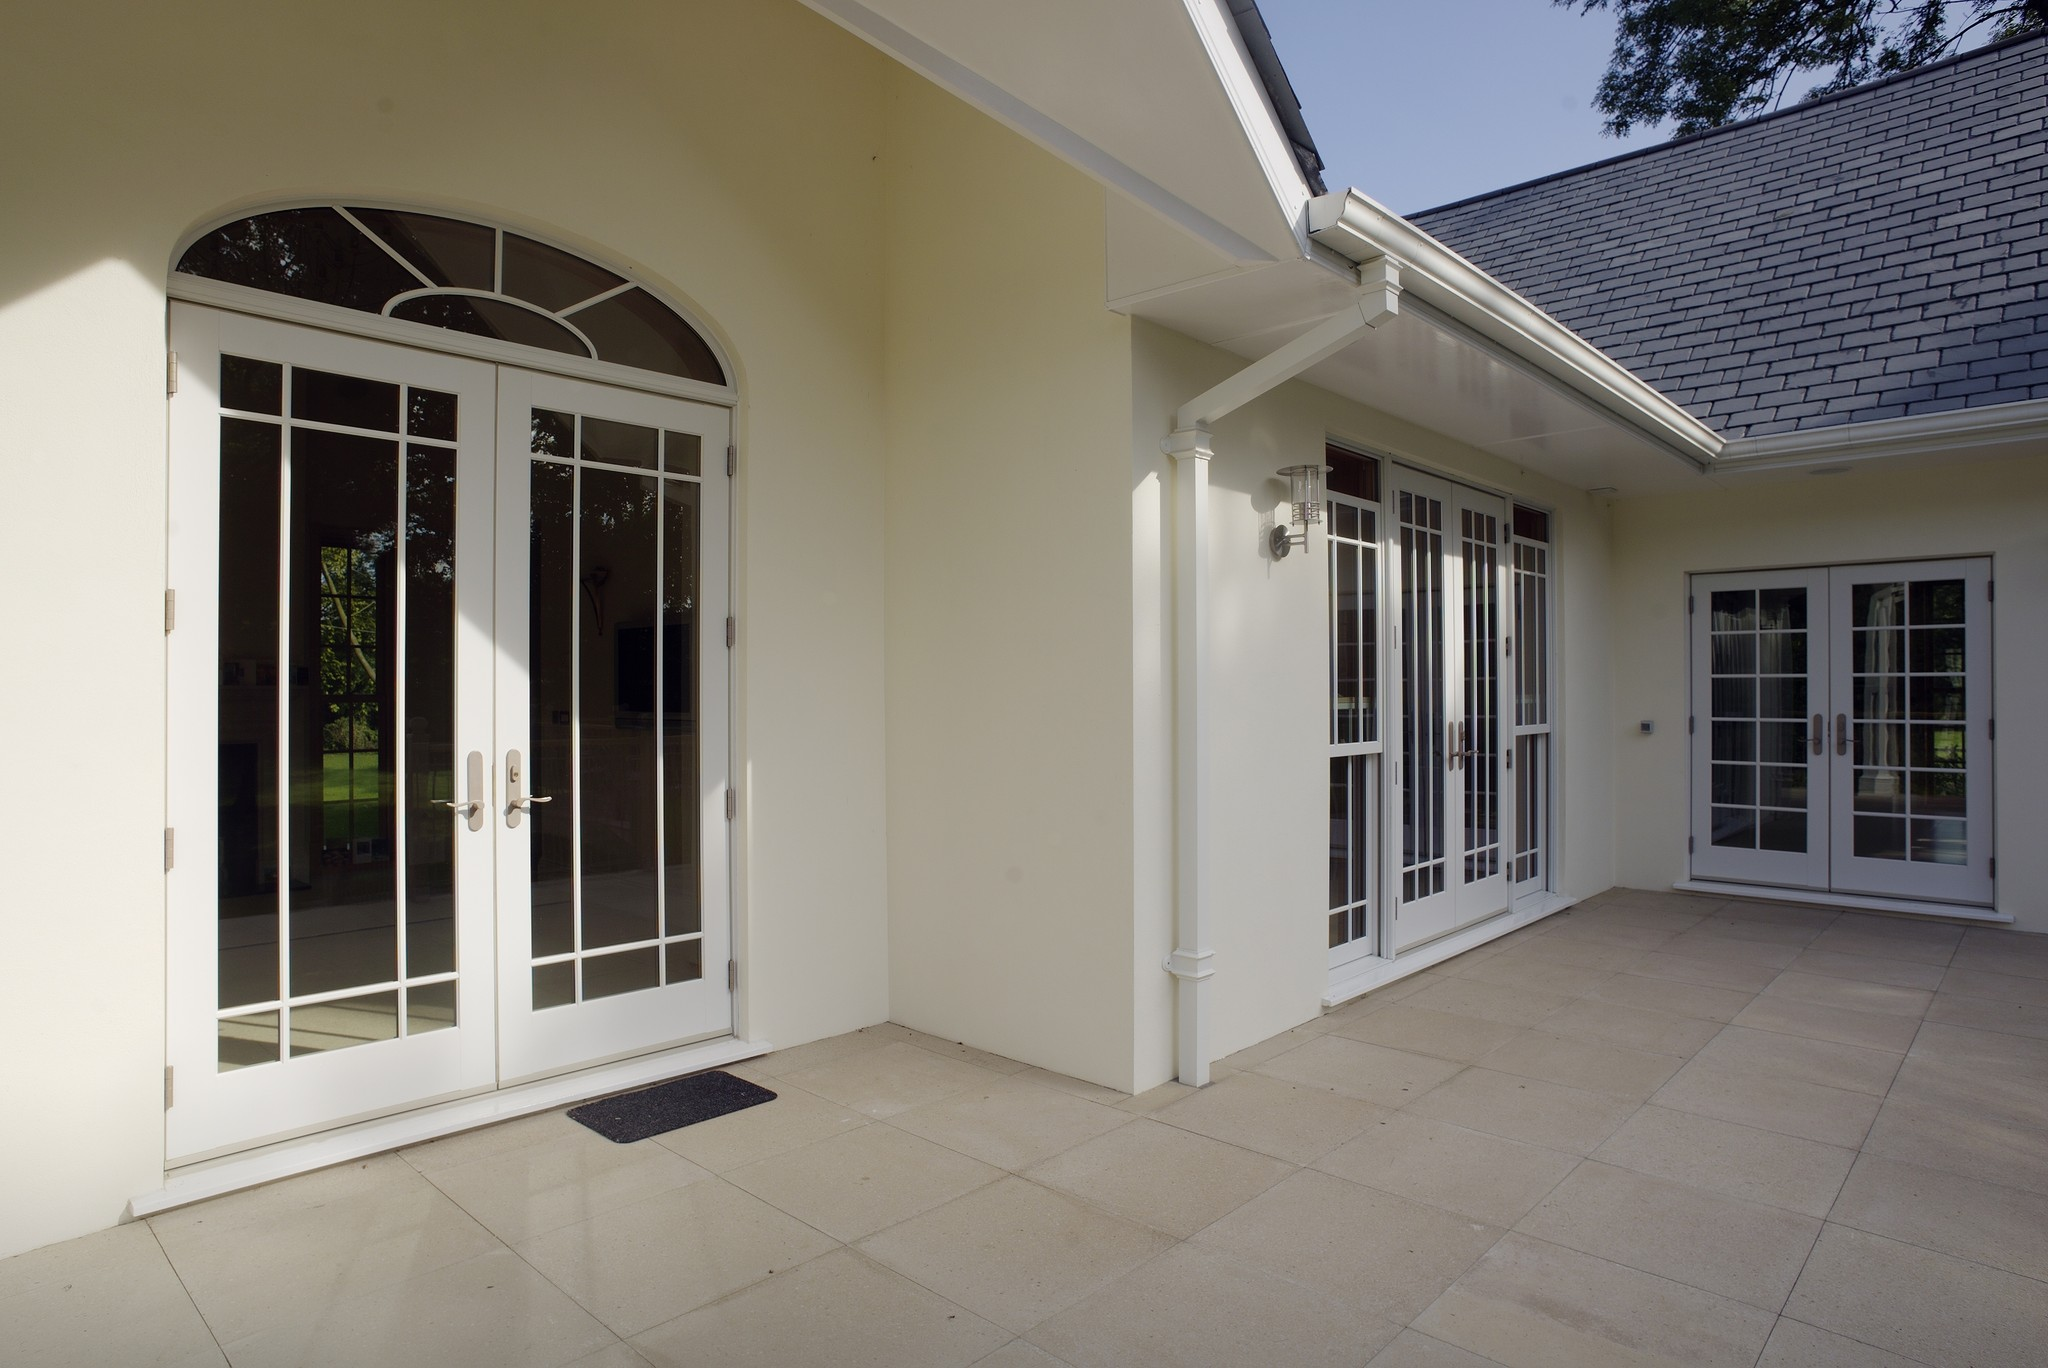 Signature french door for back entrances in urban homes